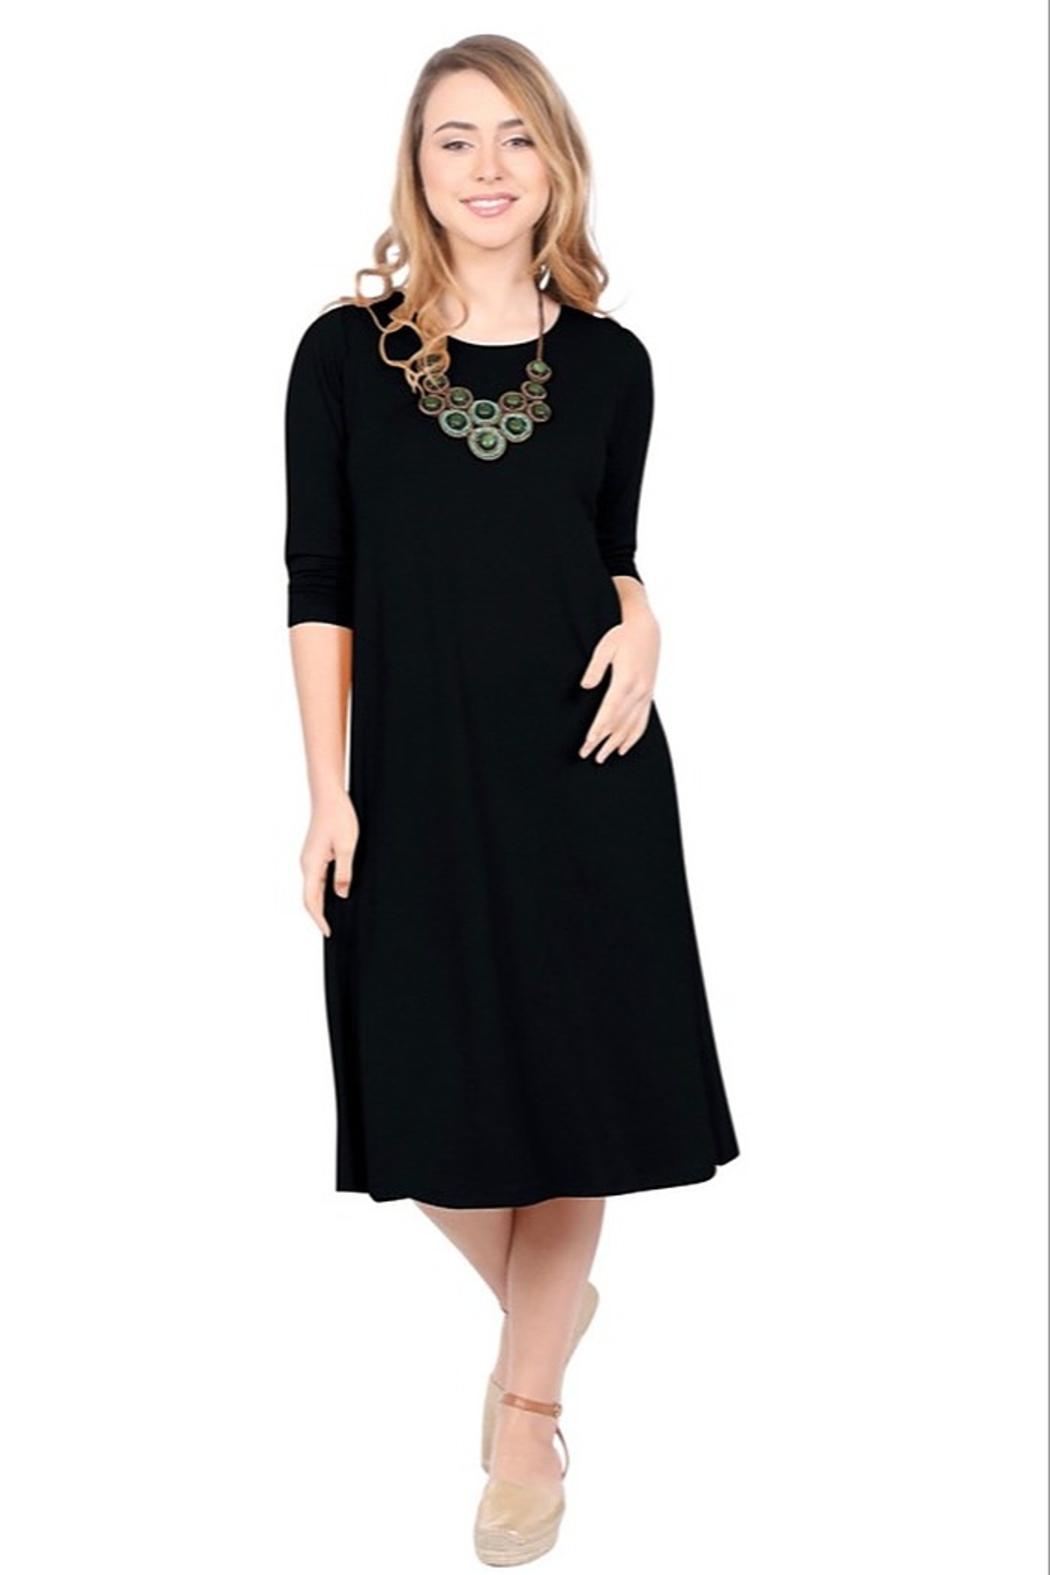 Kosher Casual A-line dress past the knee #1644 - Front Cropped Image